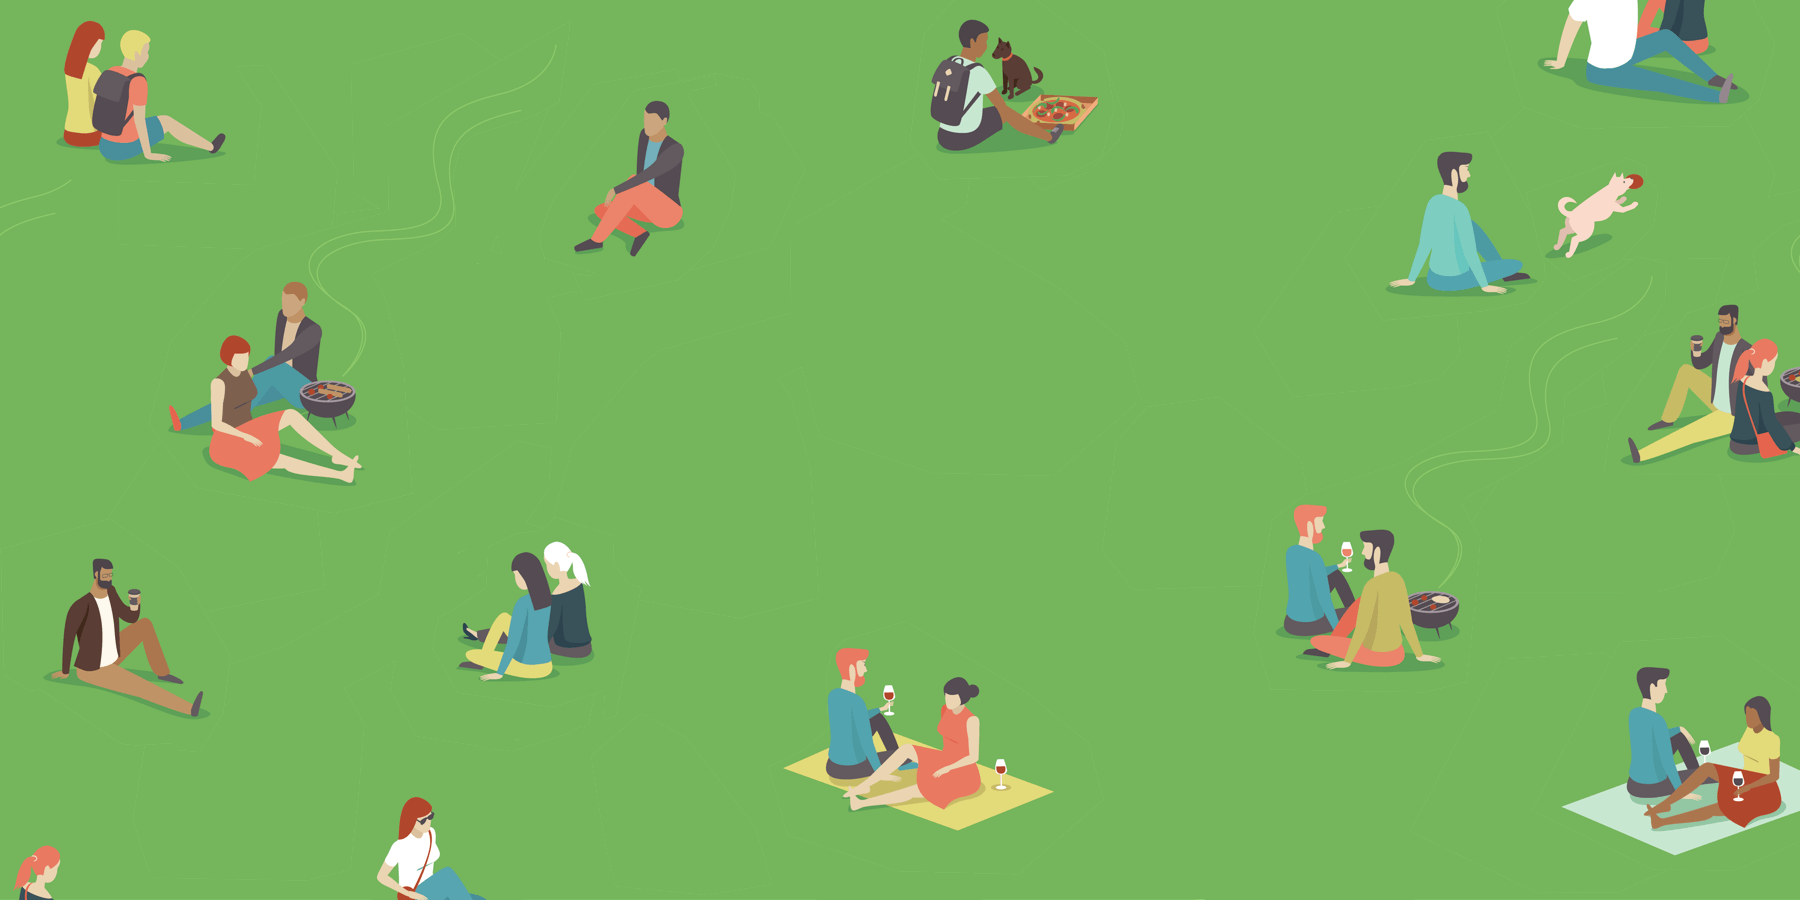 Outdoor drinking in the park illustration